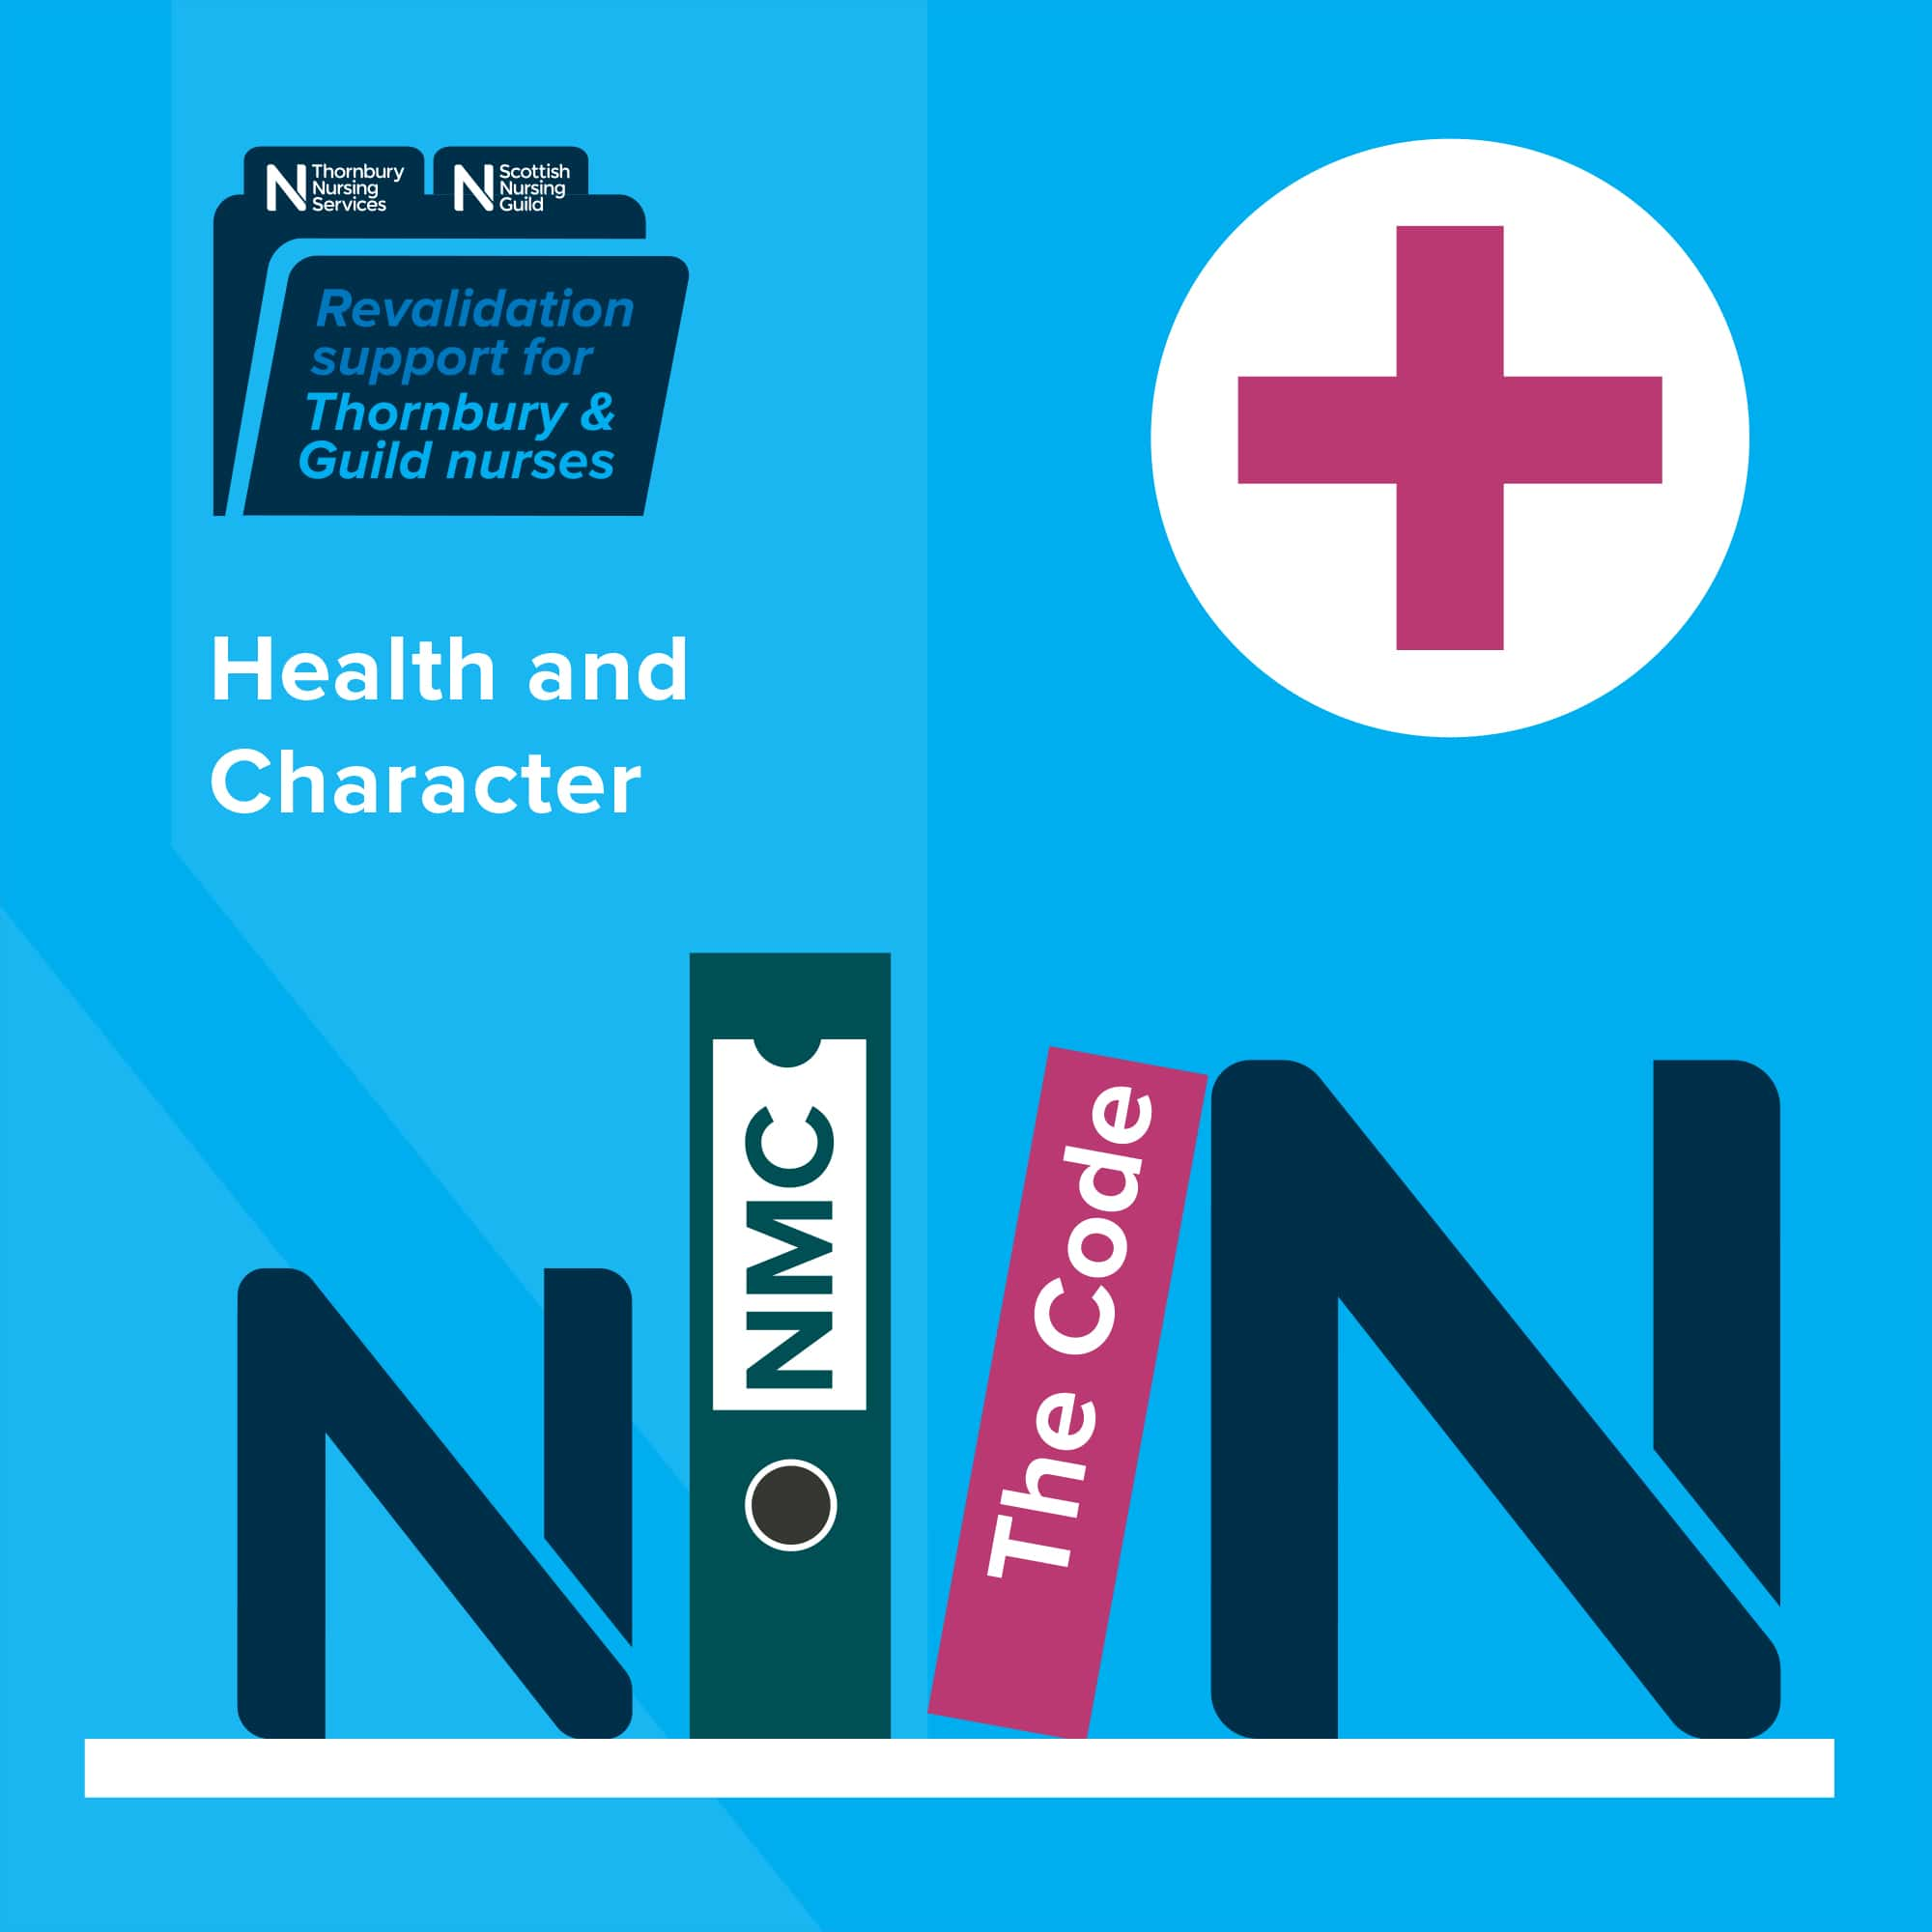 Health and character - revalidation support